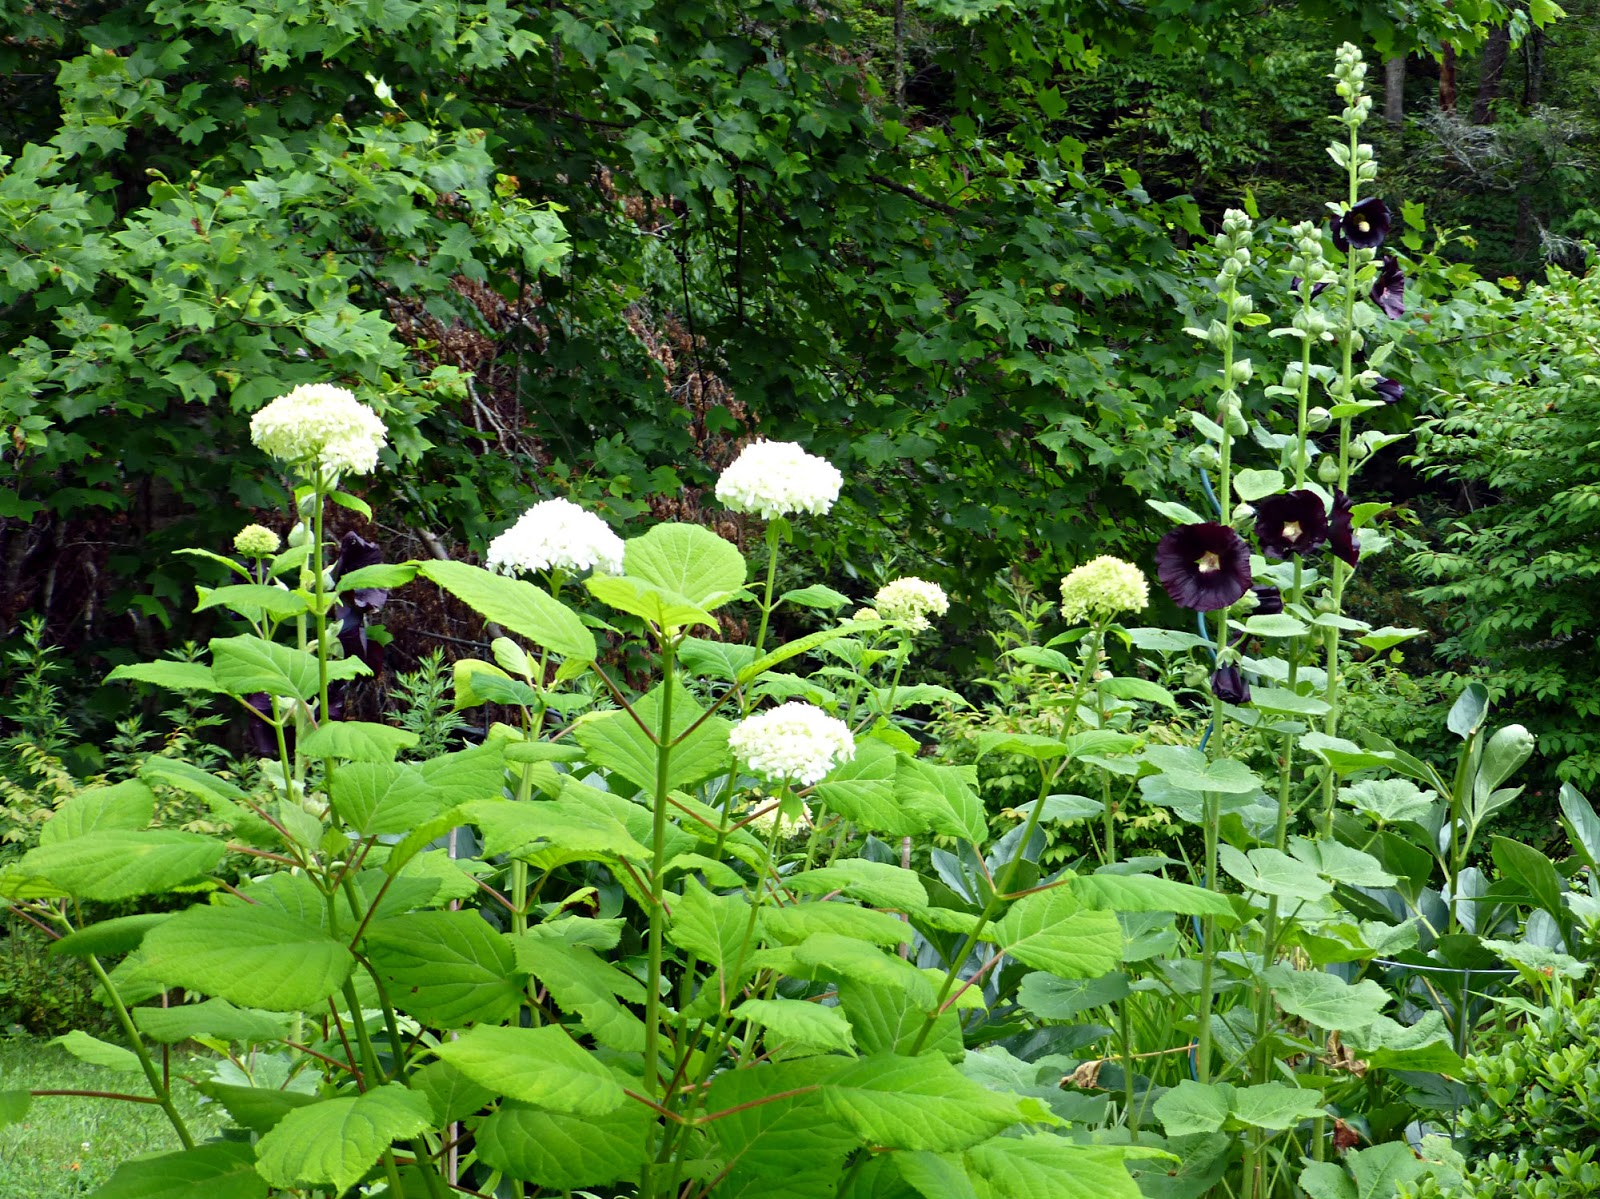 Black and white garden june 2015 update tall leafy shrub with white flower balls next to tall plant stalks with black flowers mightylinksfo